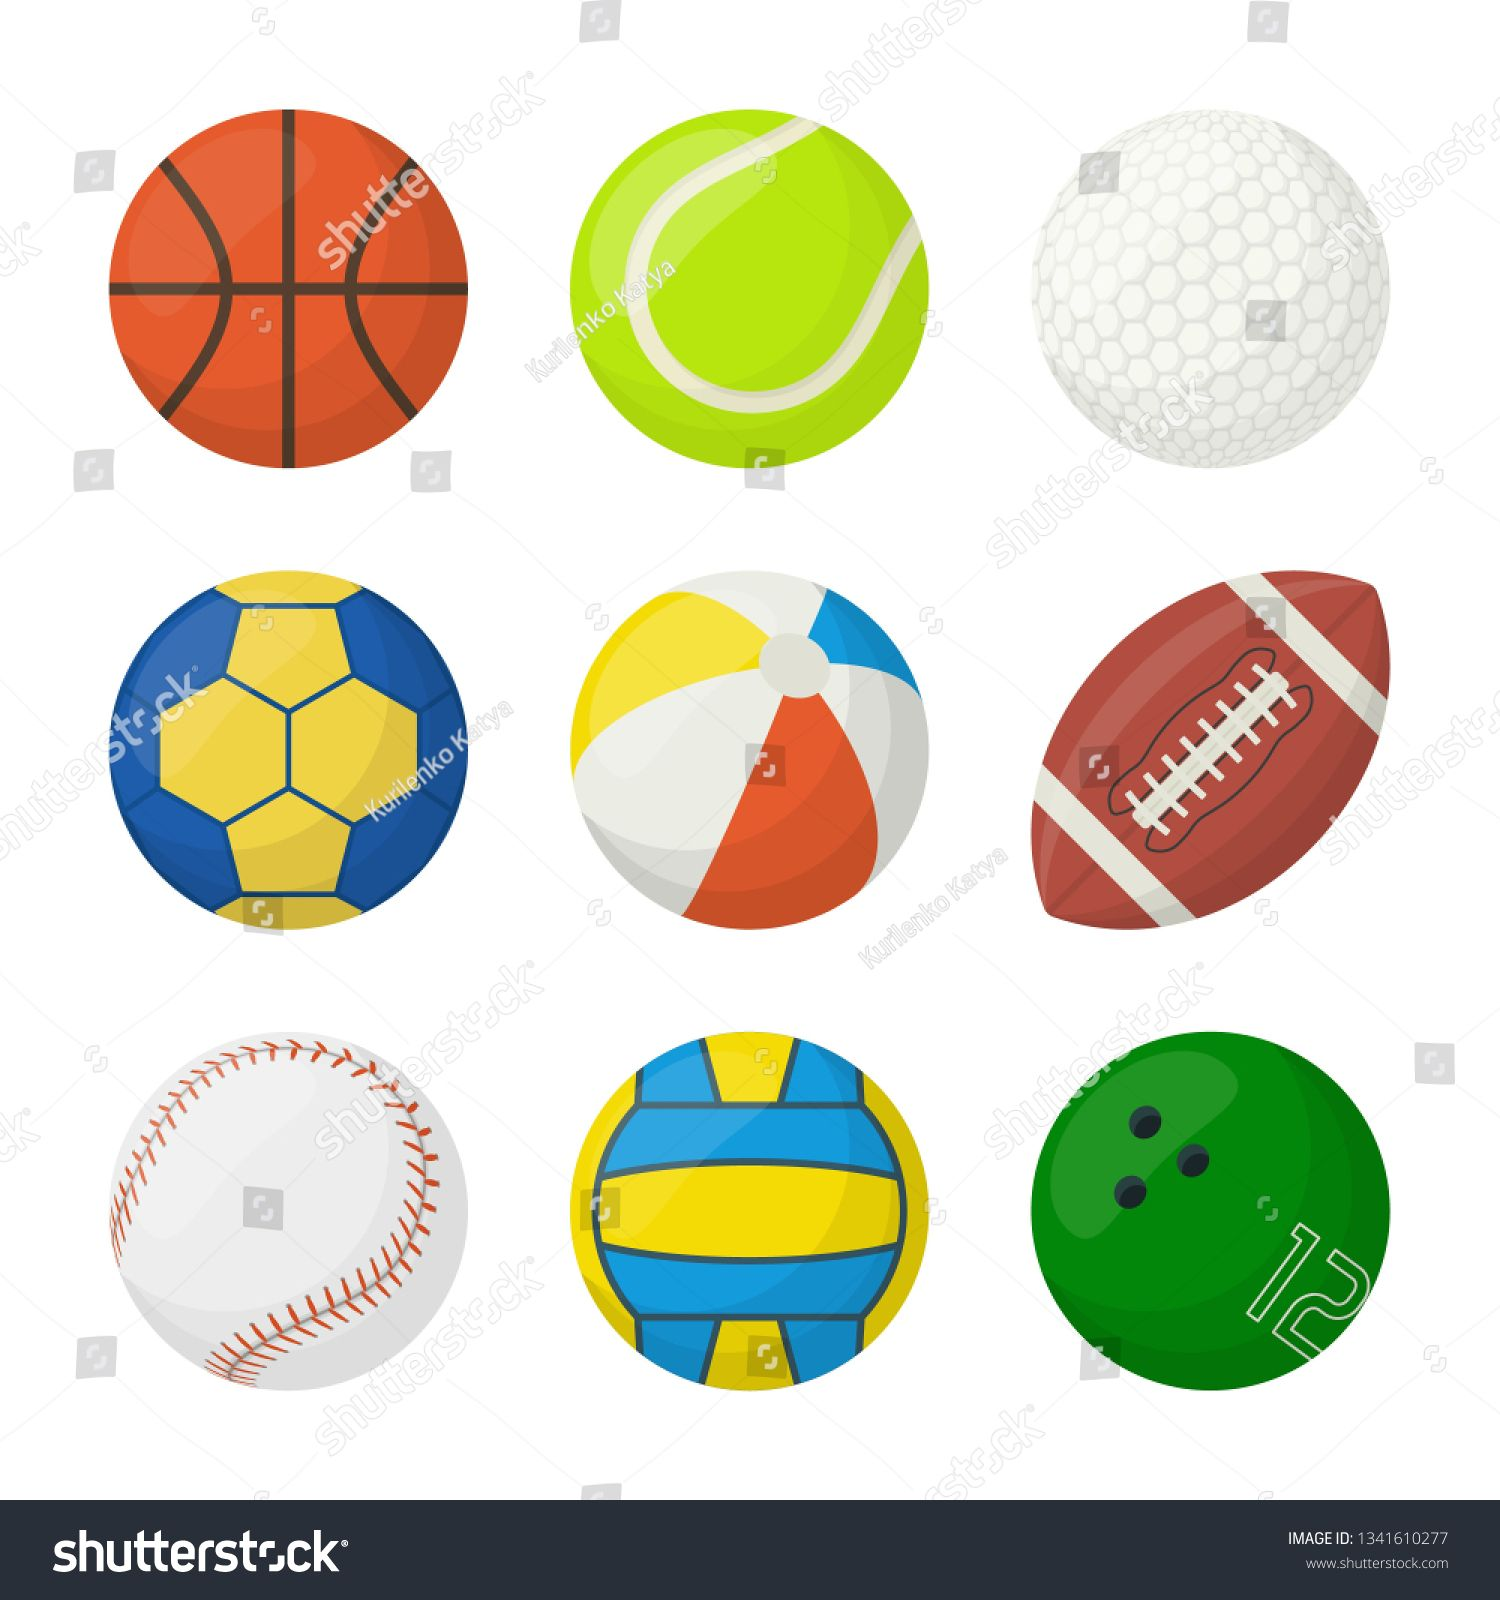 Set Balls Different Types Sports Isolated Royalty Free Image Vector In 2020 With Images Royalty Free Images Vector Images Royalty Free